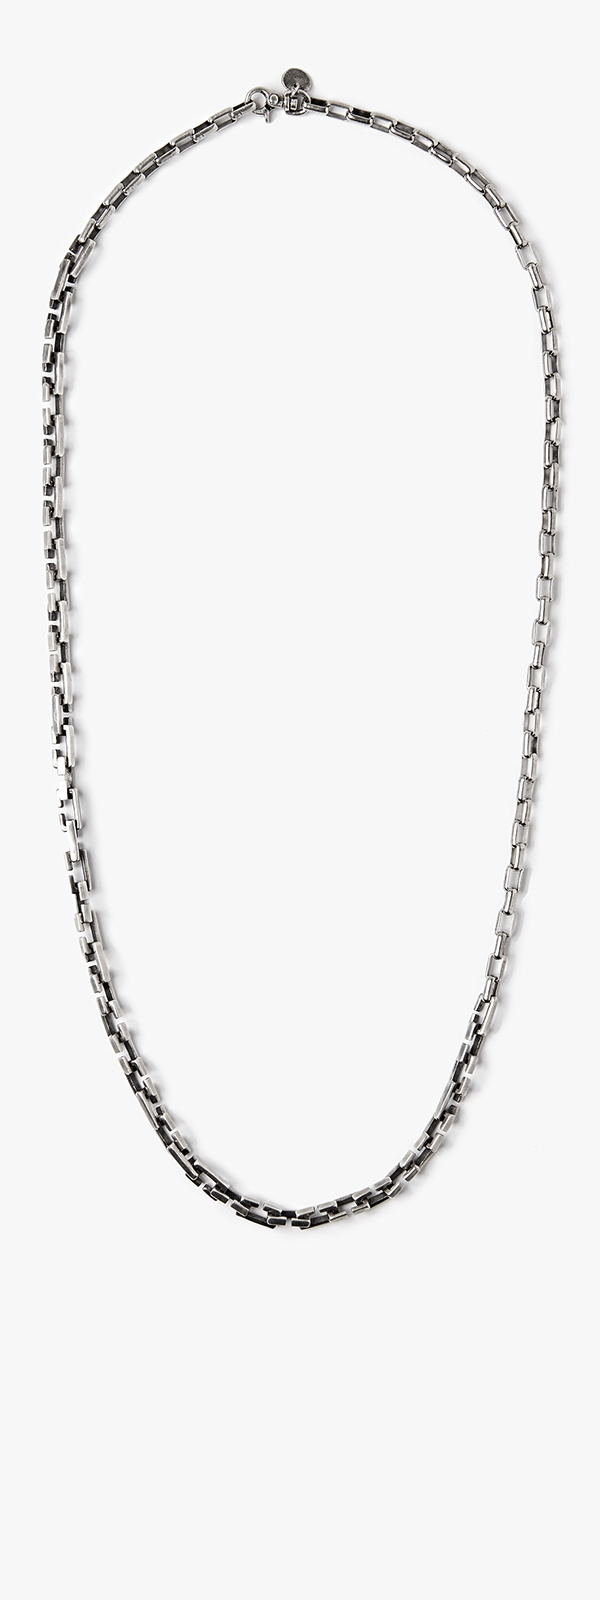 Image of Box Chain Necklace 103